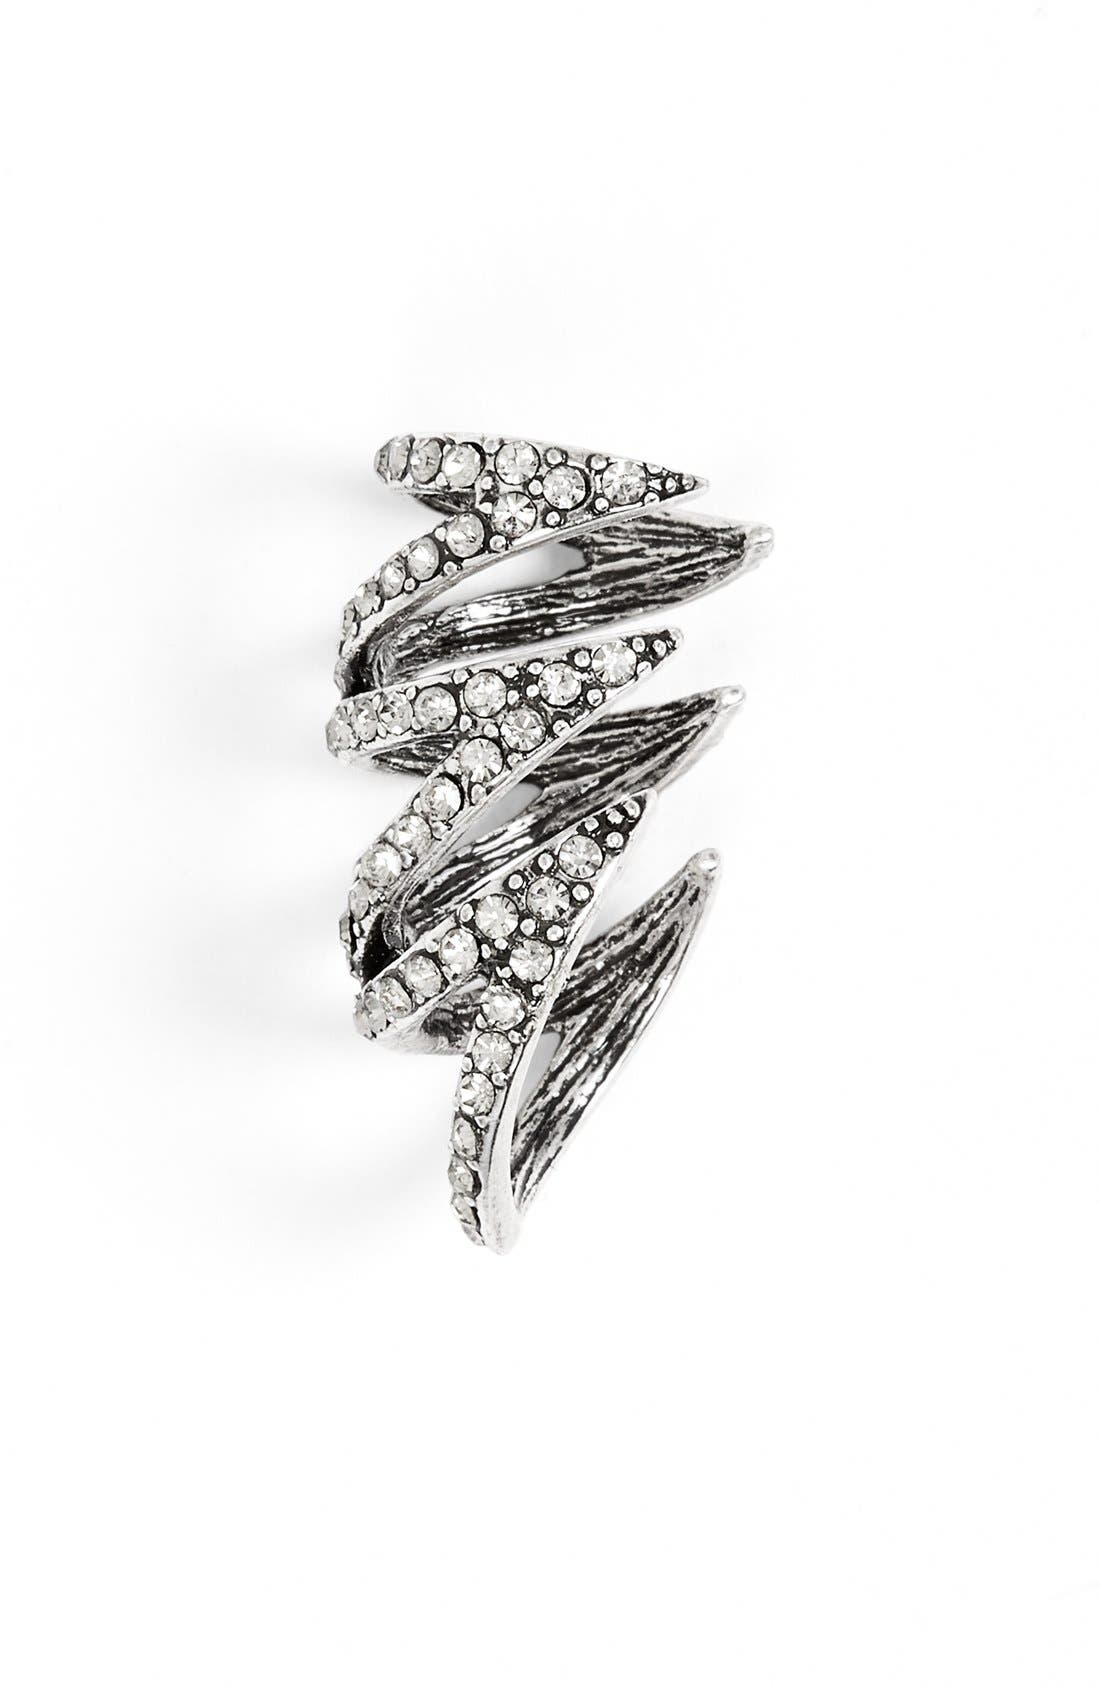 Alternate Image 1 Selected - House of Harlow 1960 'Equator' Pavé Ear Cuff